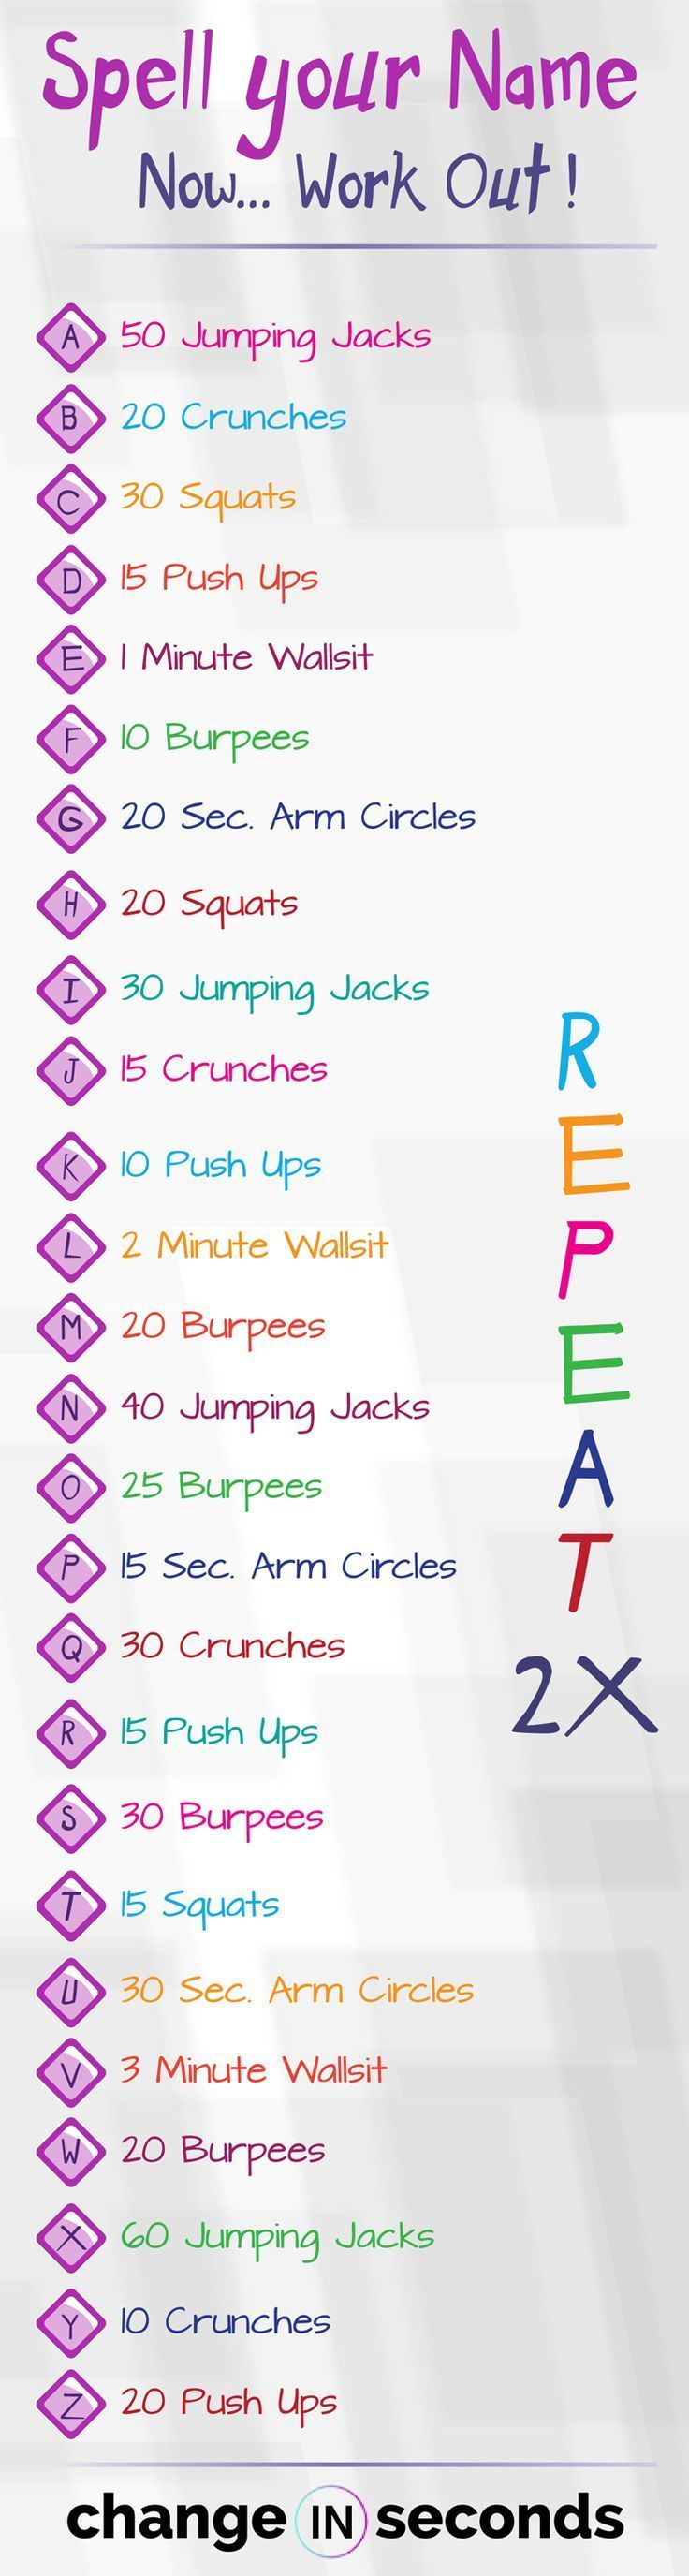 Spell Your Name Workout – get in shape quickly (download PDF